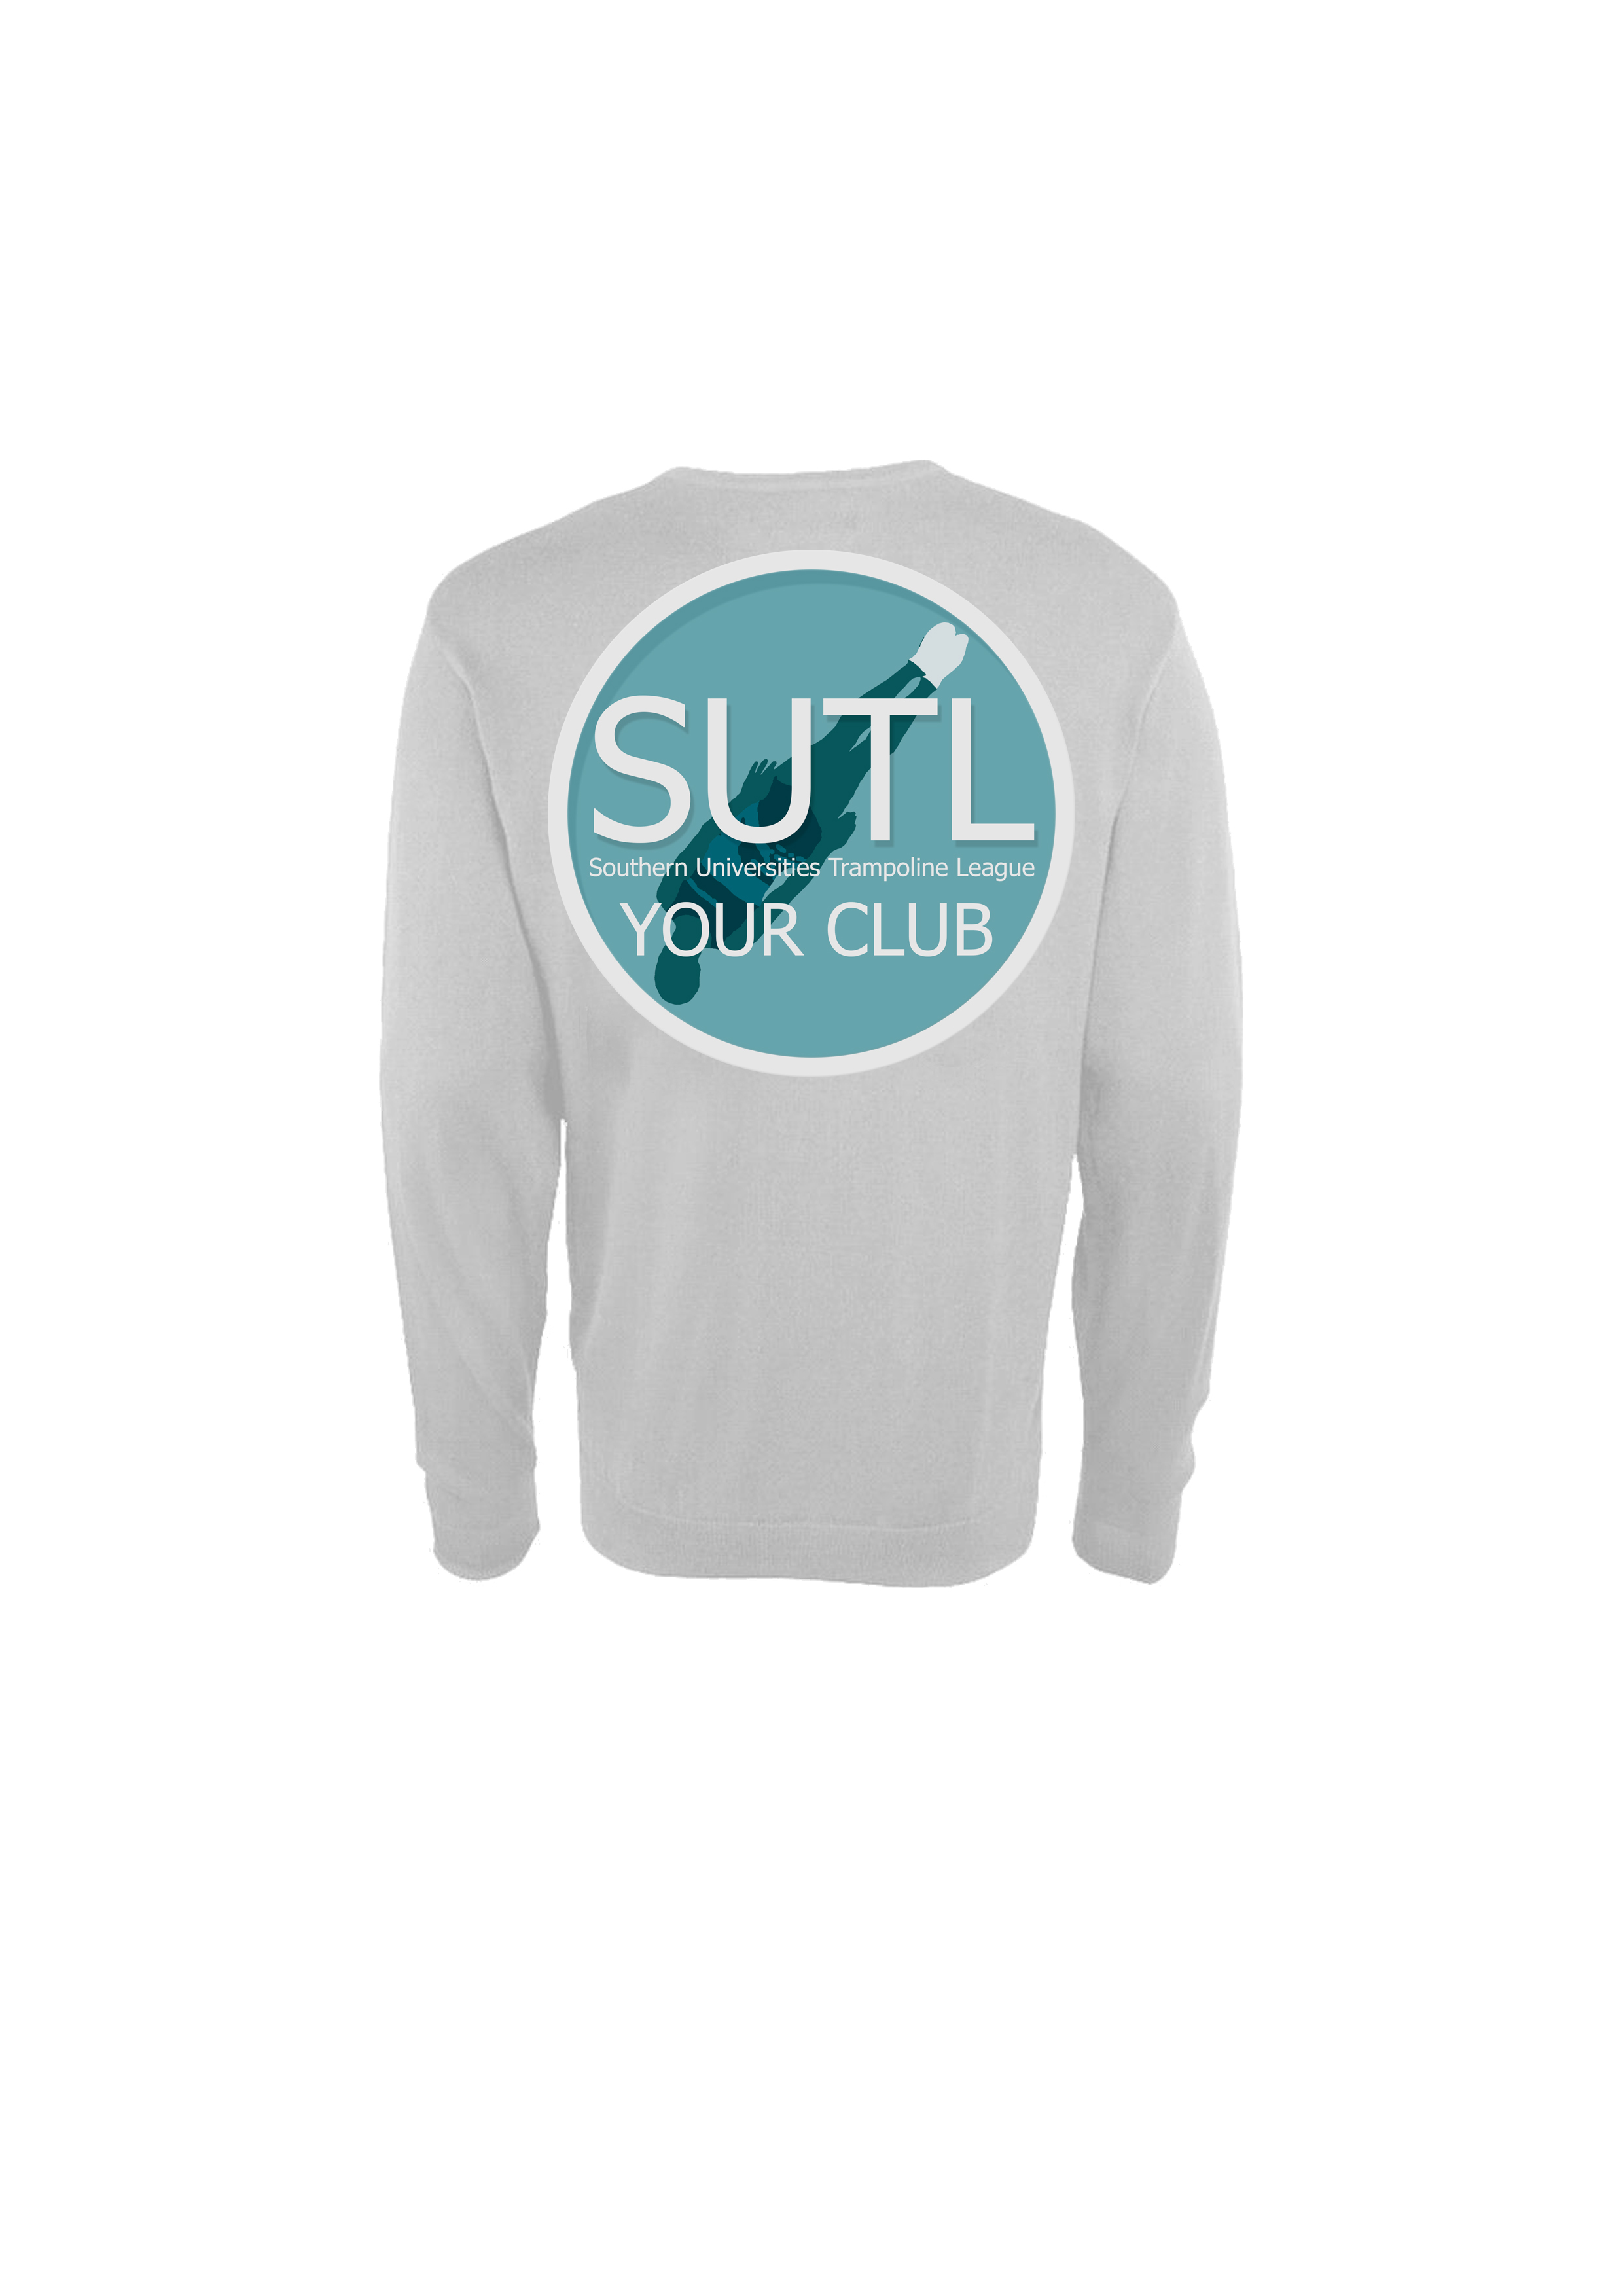 Back of SUTL jumper